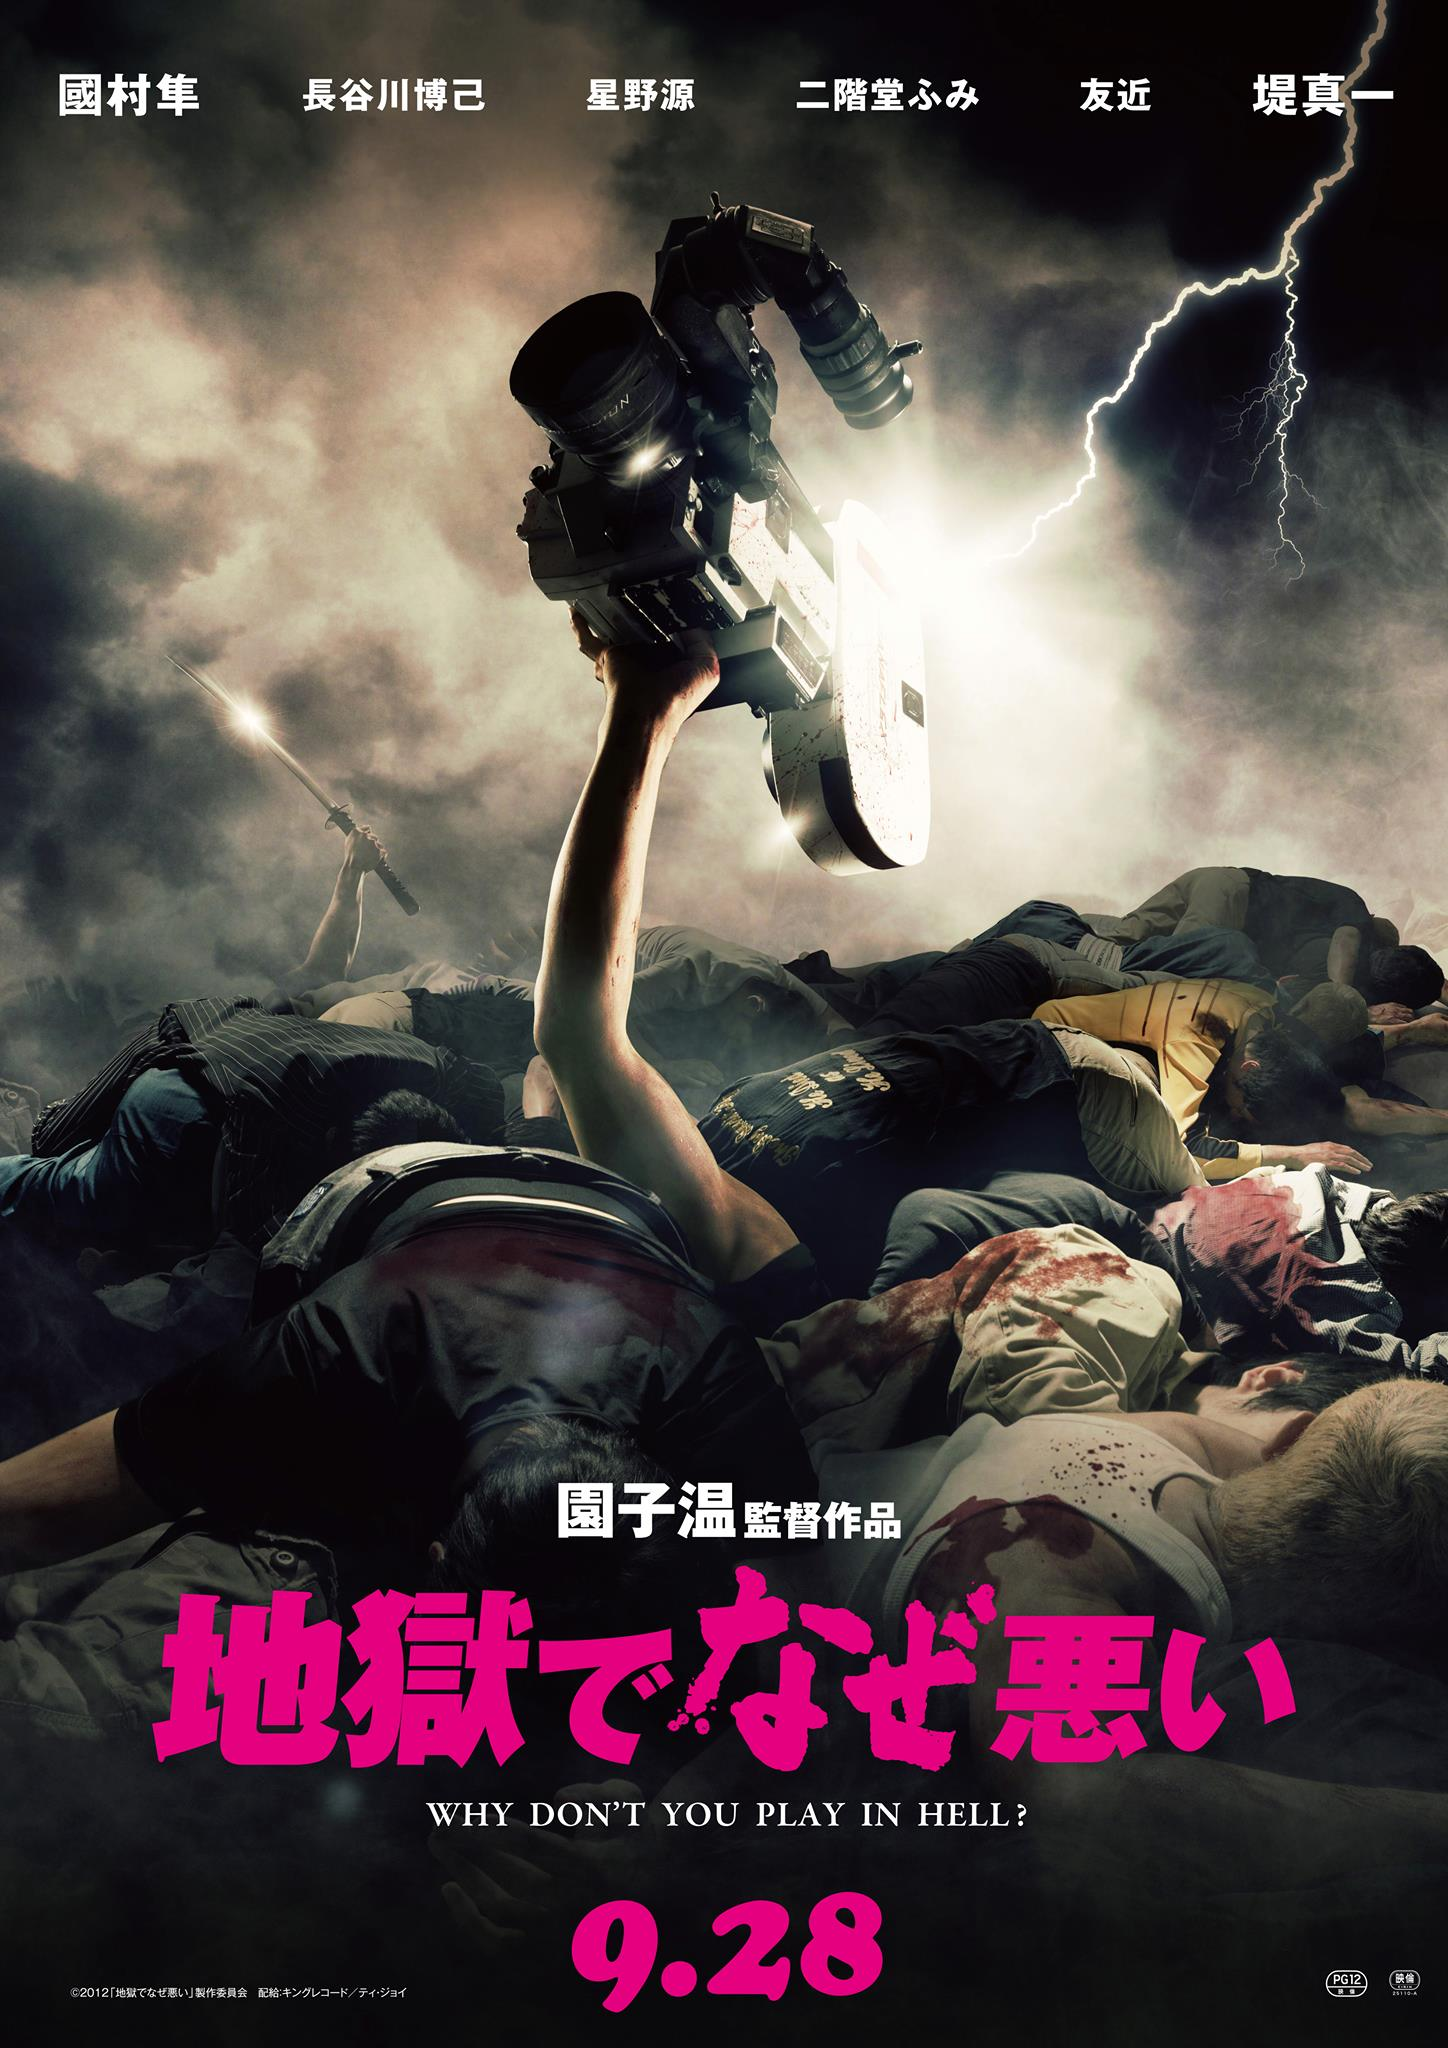 NYAFF/Japan Cuts '14: 'Why Don't You Play in Hell? Review